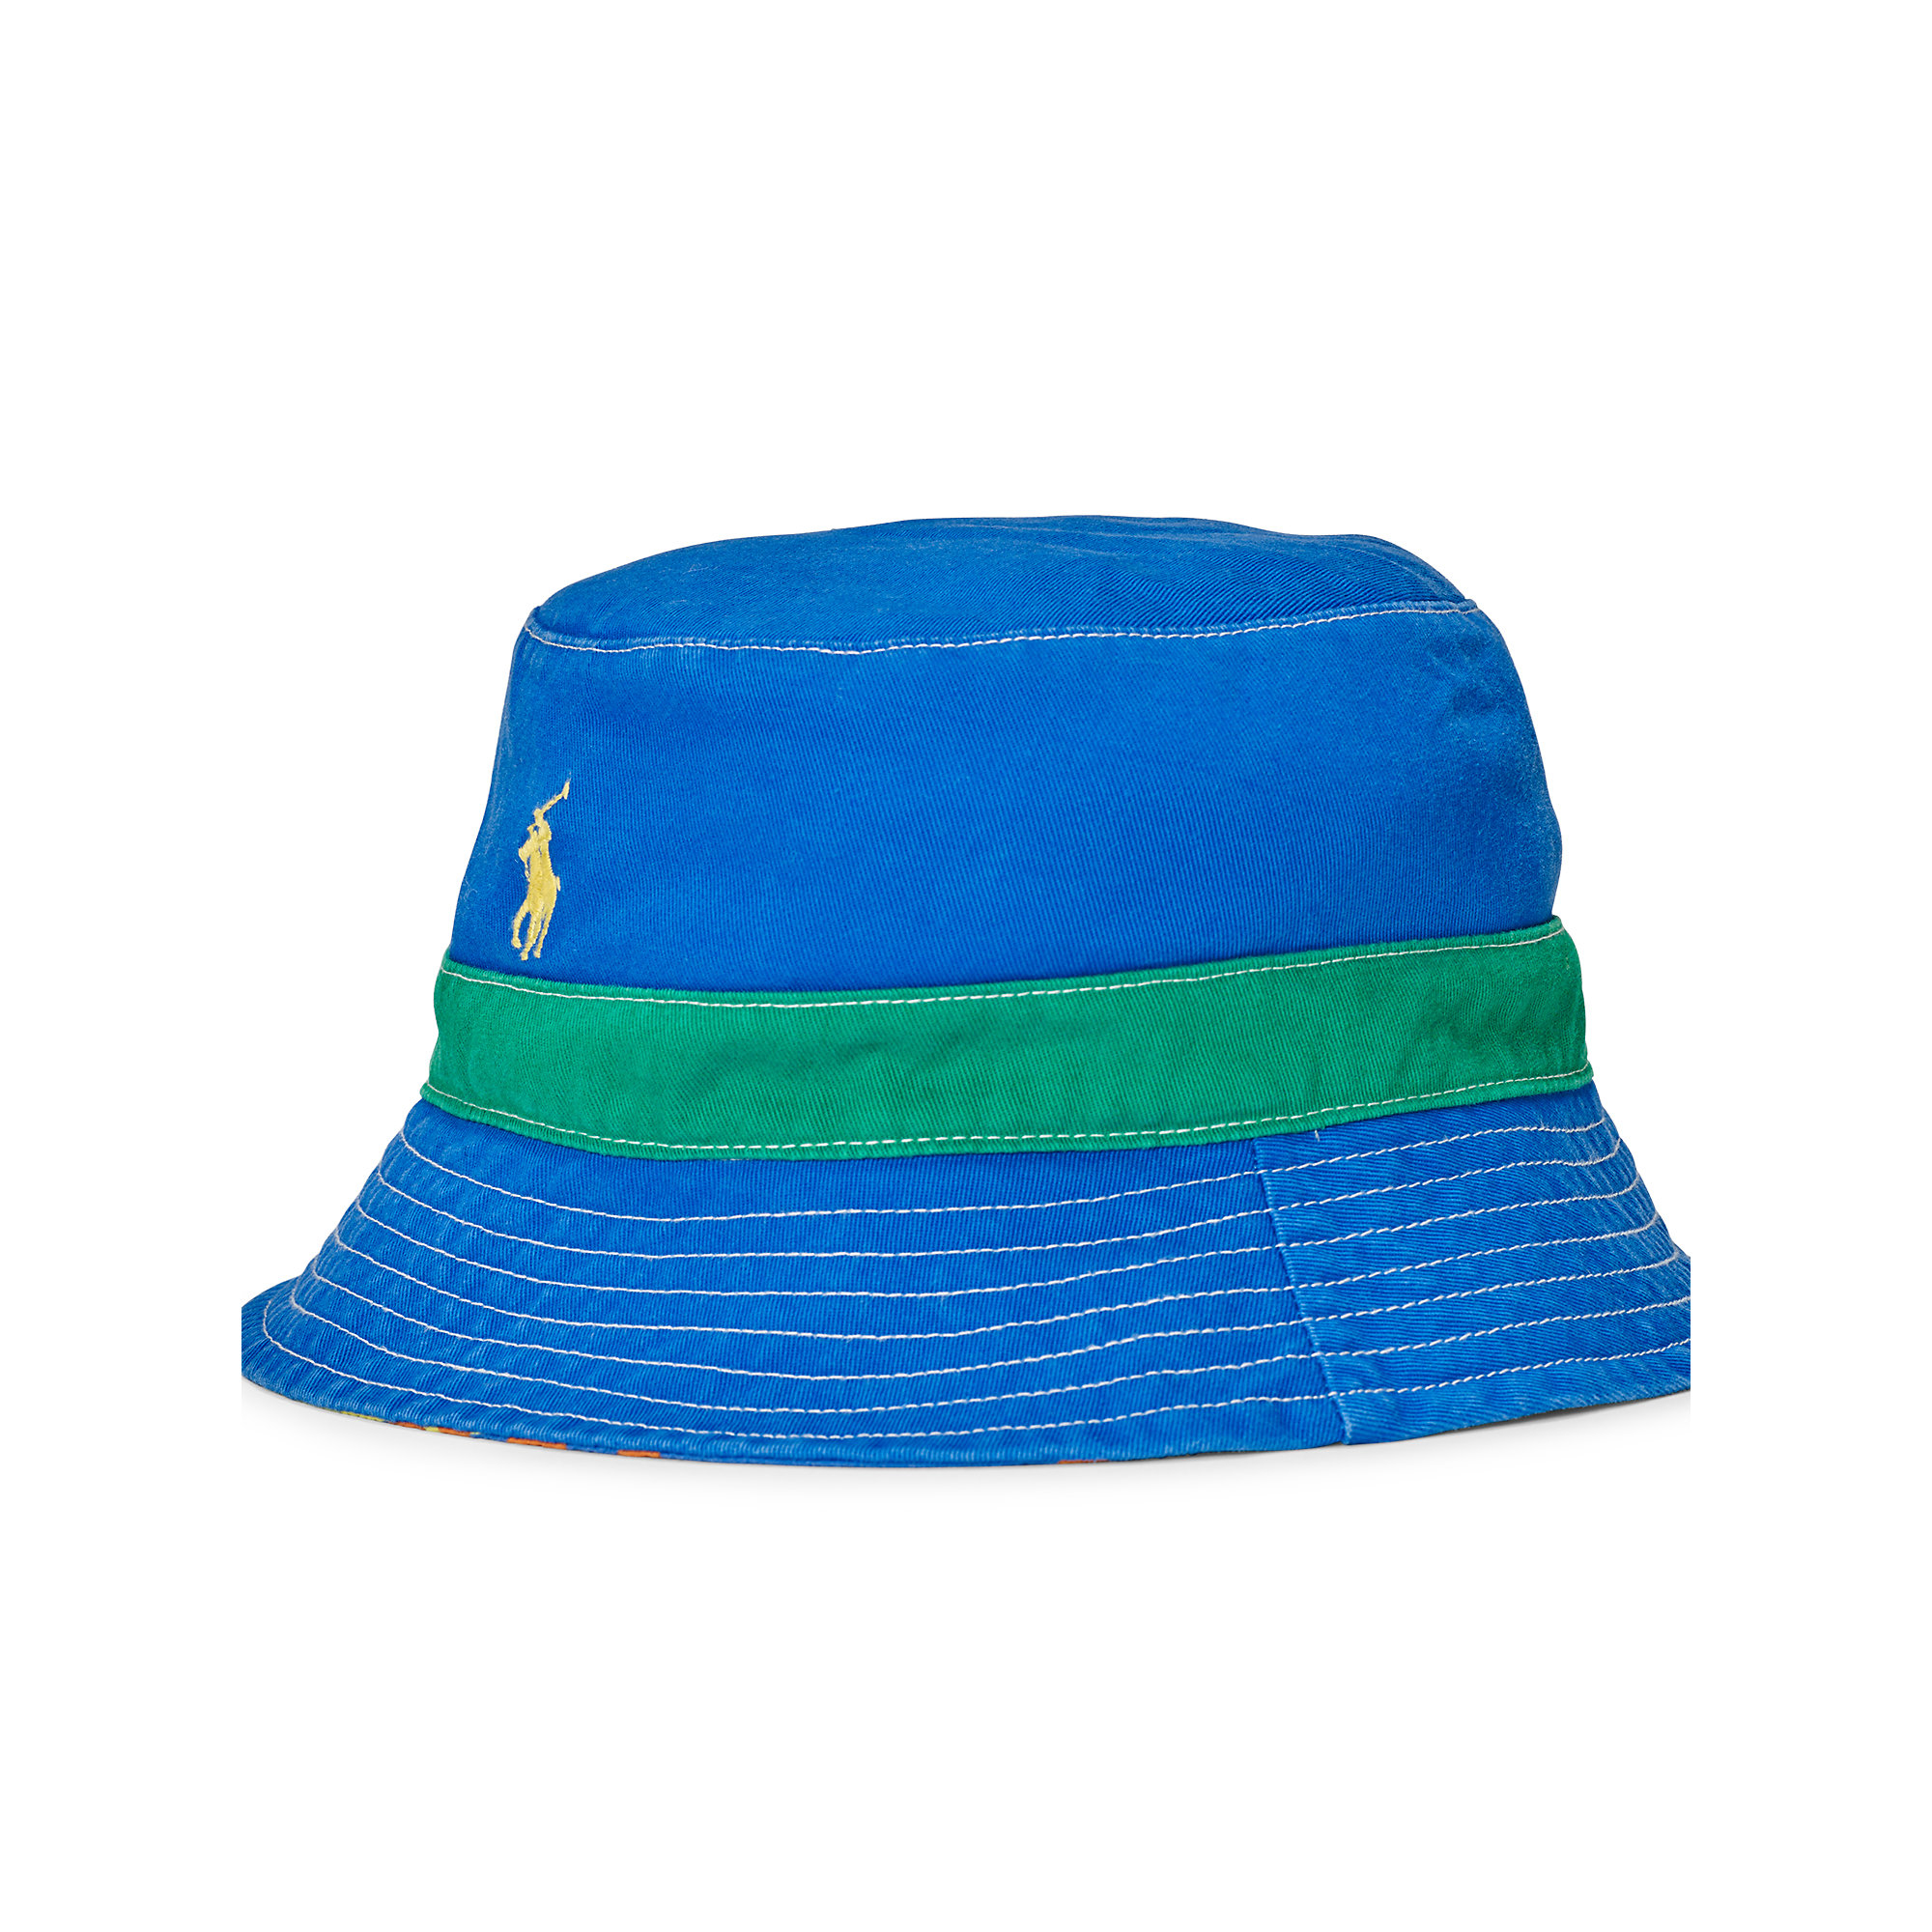 f170790bf7cfa Lyst - Polo Ralph Lauren Reversible Twill Bucket Hat for Men